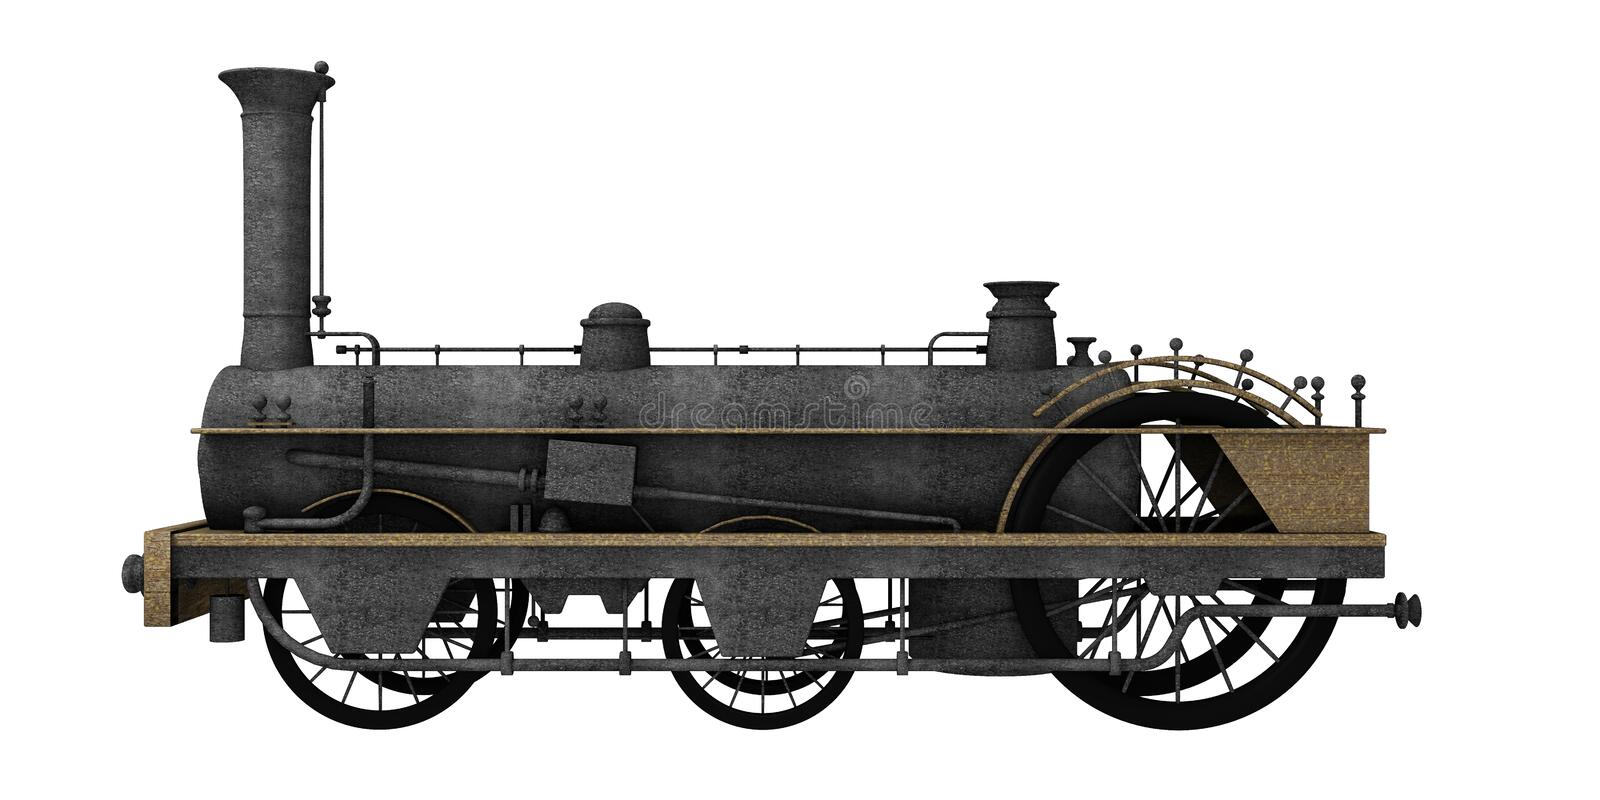 Download Antique steam train stock illustration. Image of aged - 29692358